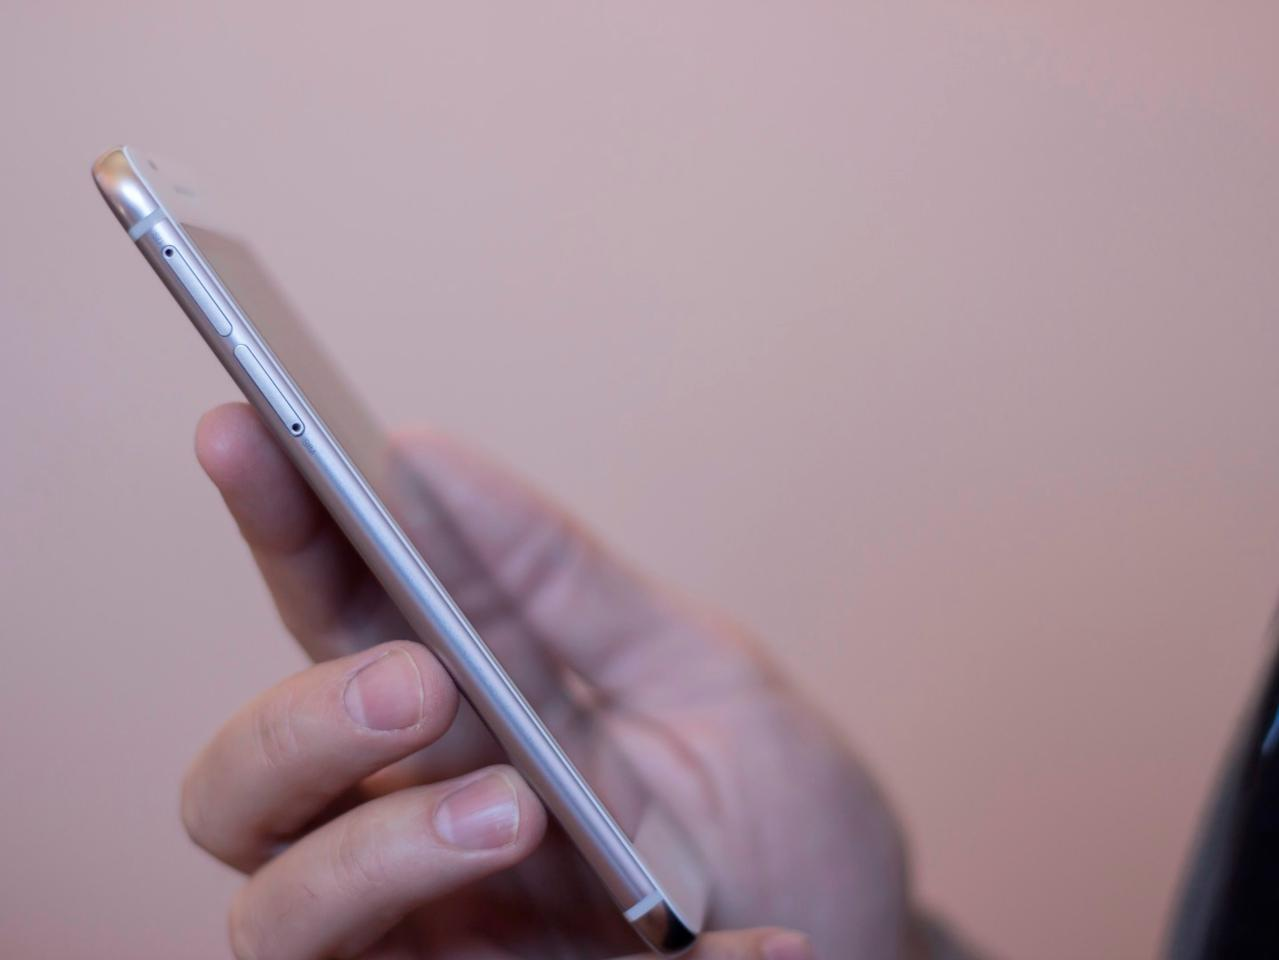 The One A9 is 7.3 mm (0.29 inch) thick